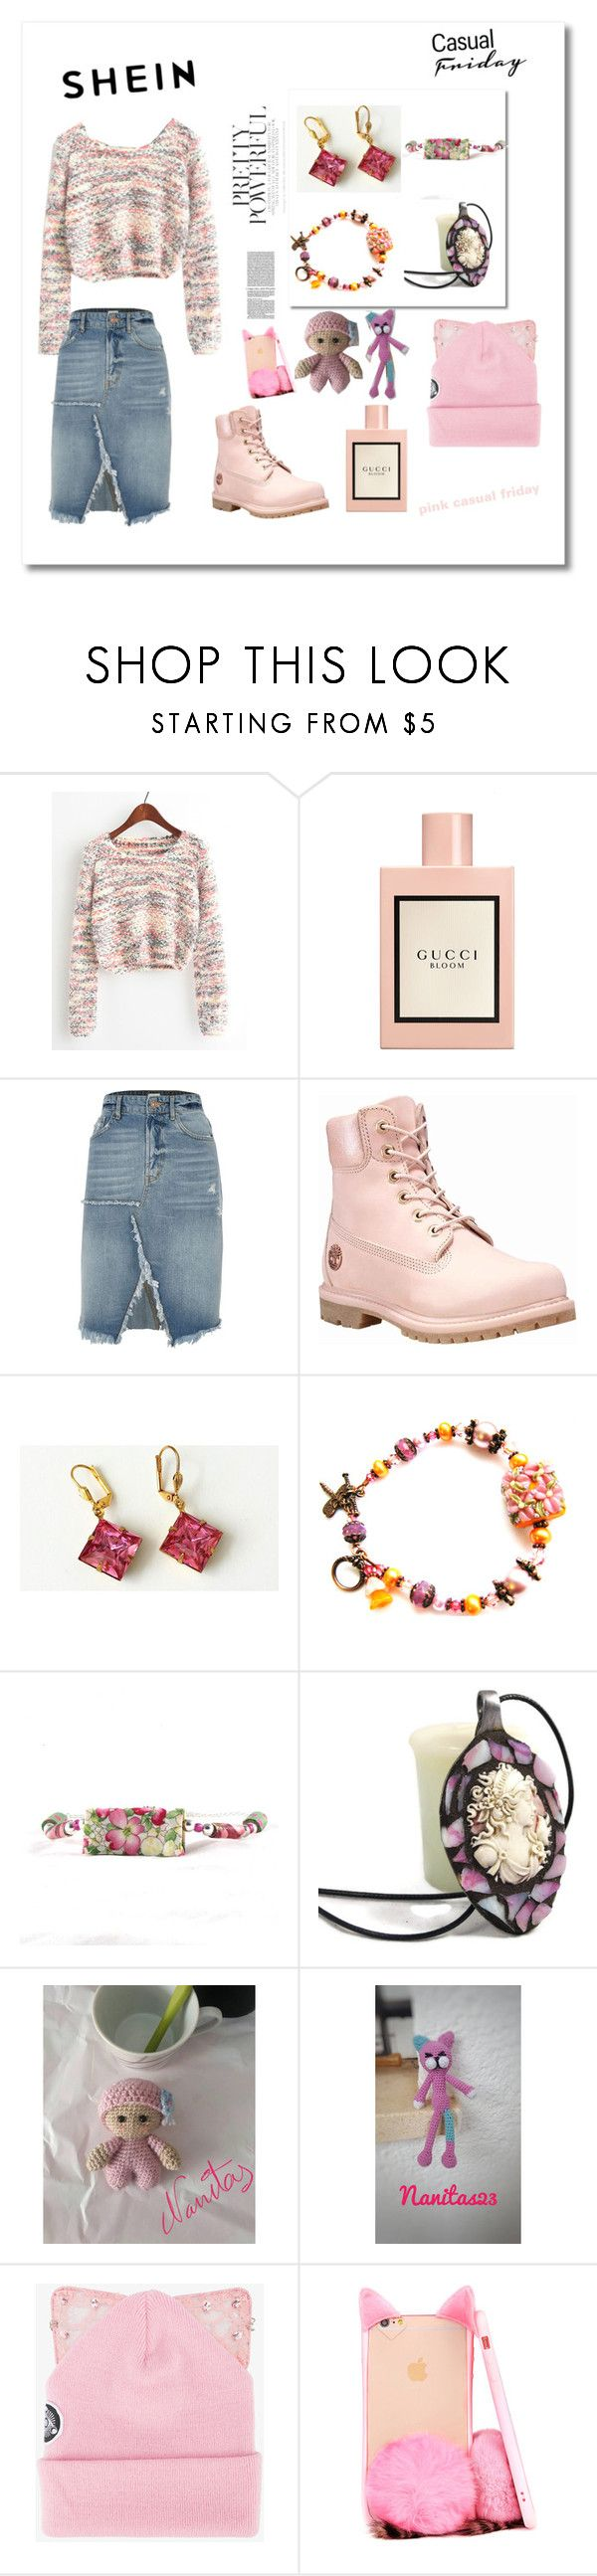 """""""Pink casual friday"""" by nanitas23 ❤ liked on Polyvore featuring Gucci, River Island, Timberland and Silver Spoon Attire"""